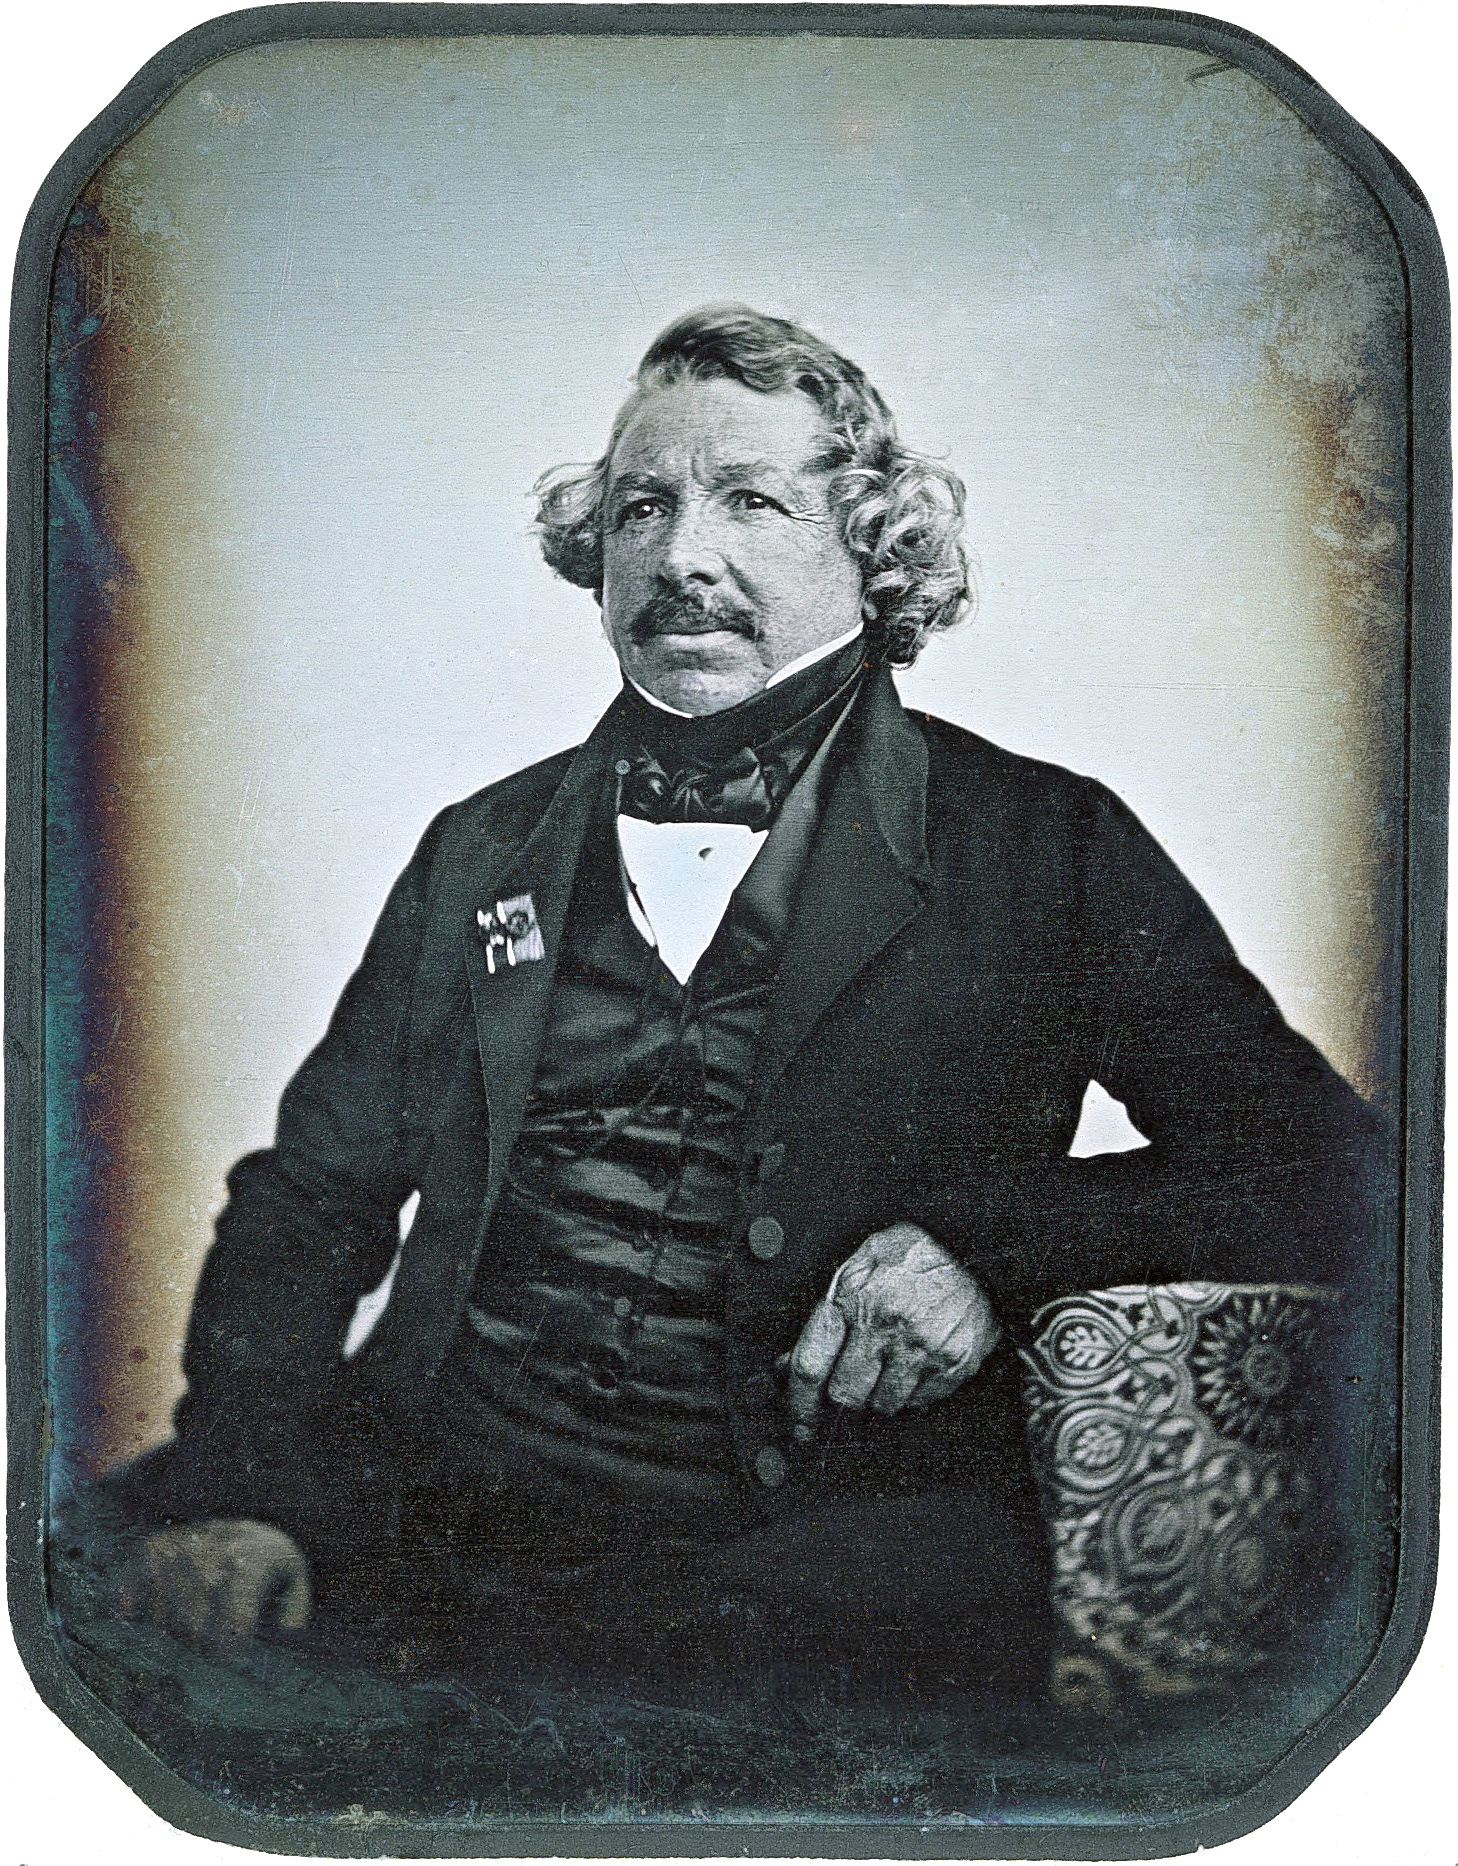 Image of Louis Jacques Mandé Daguerre from Wikidata